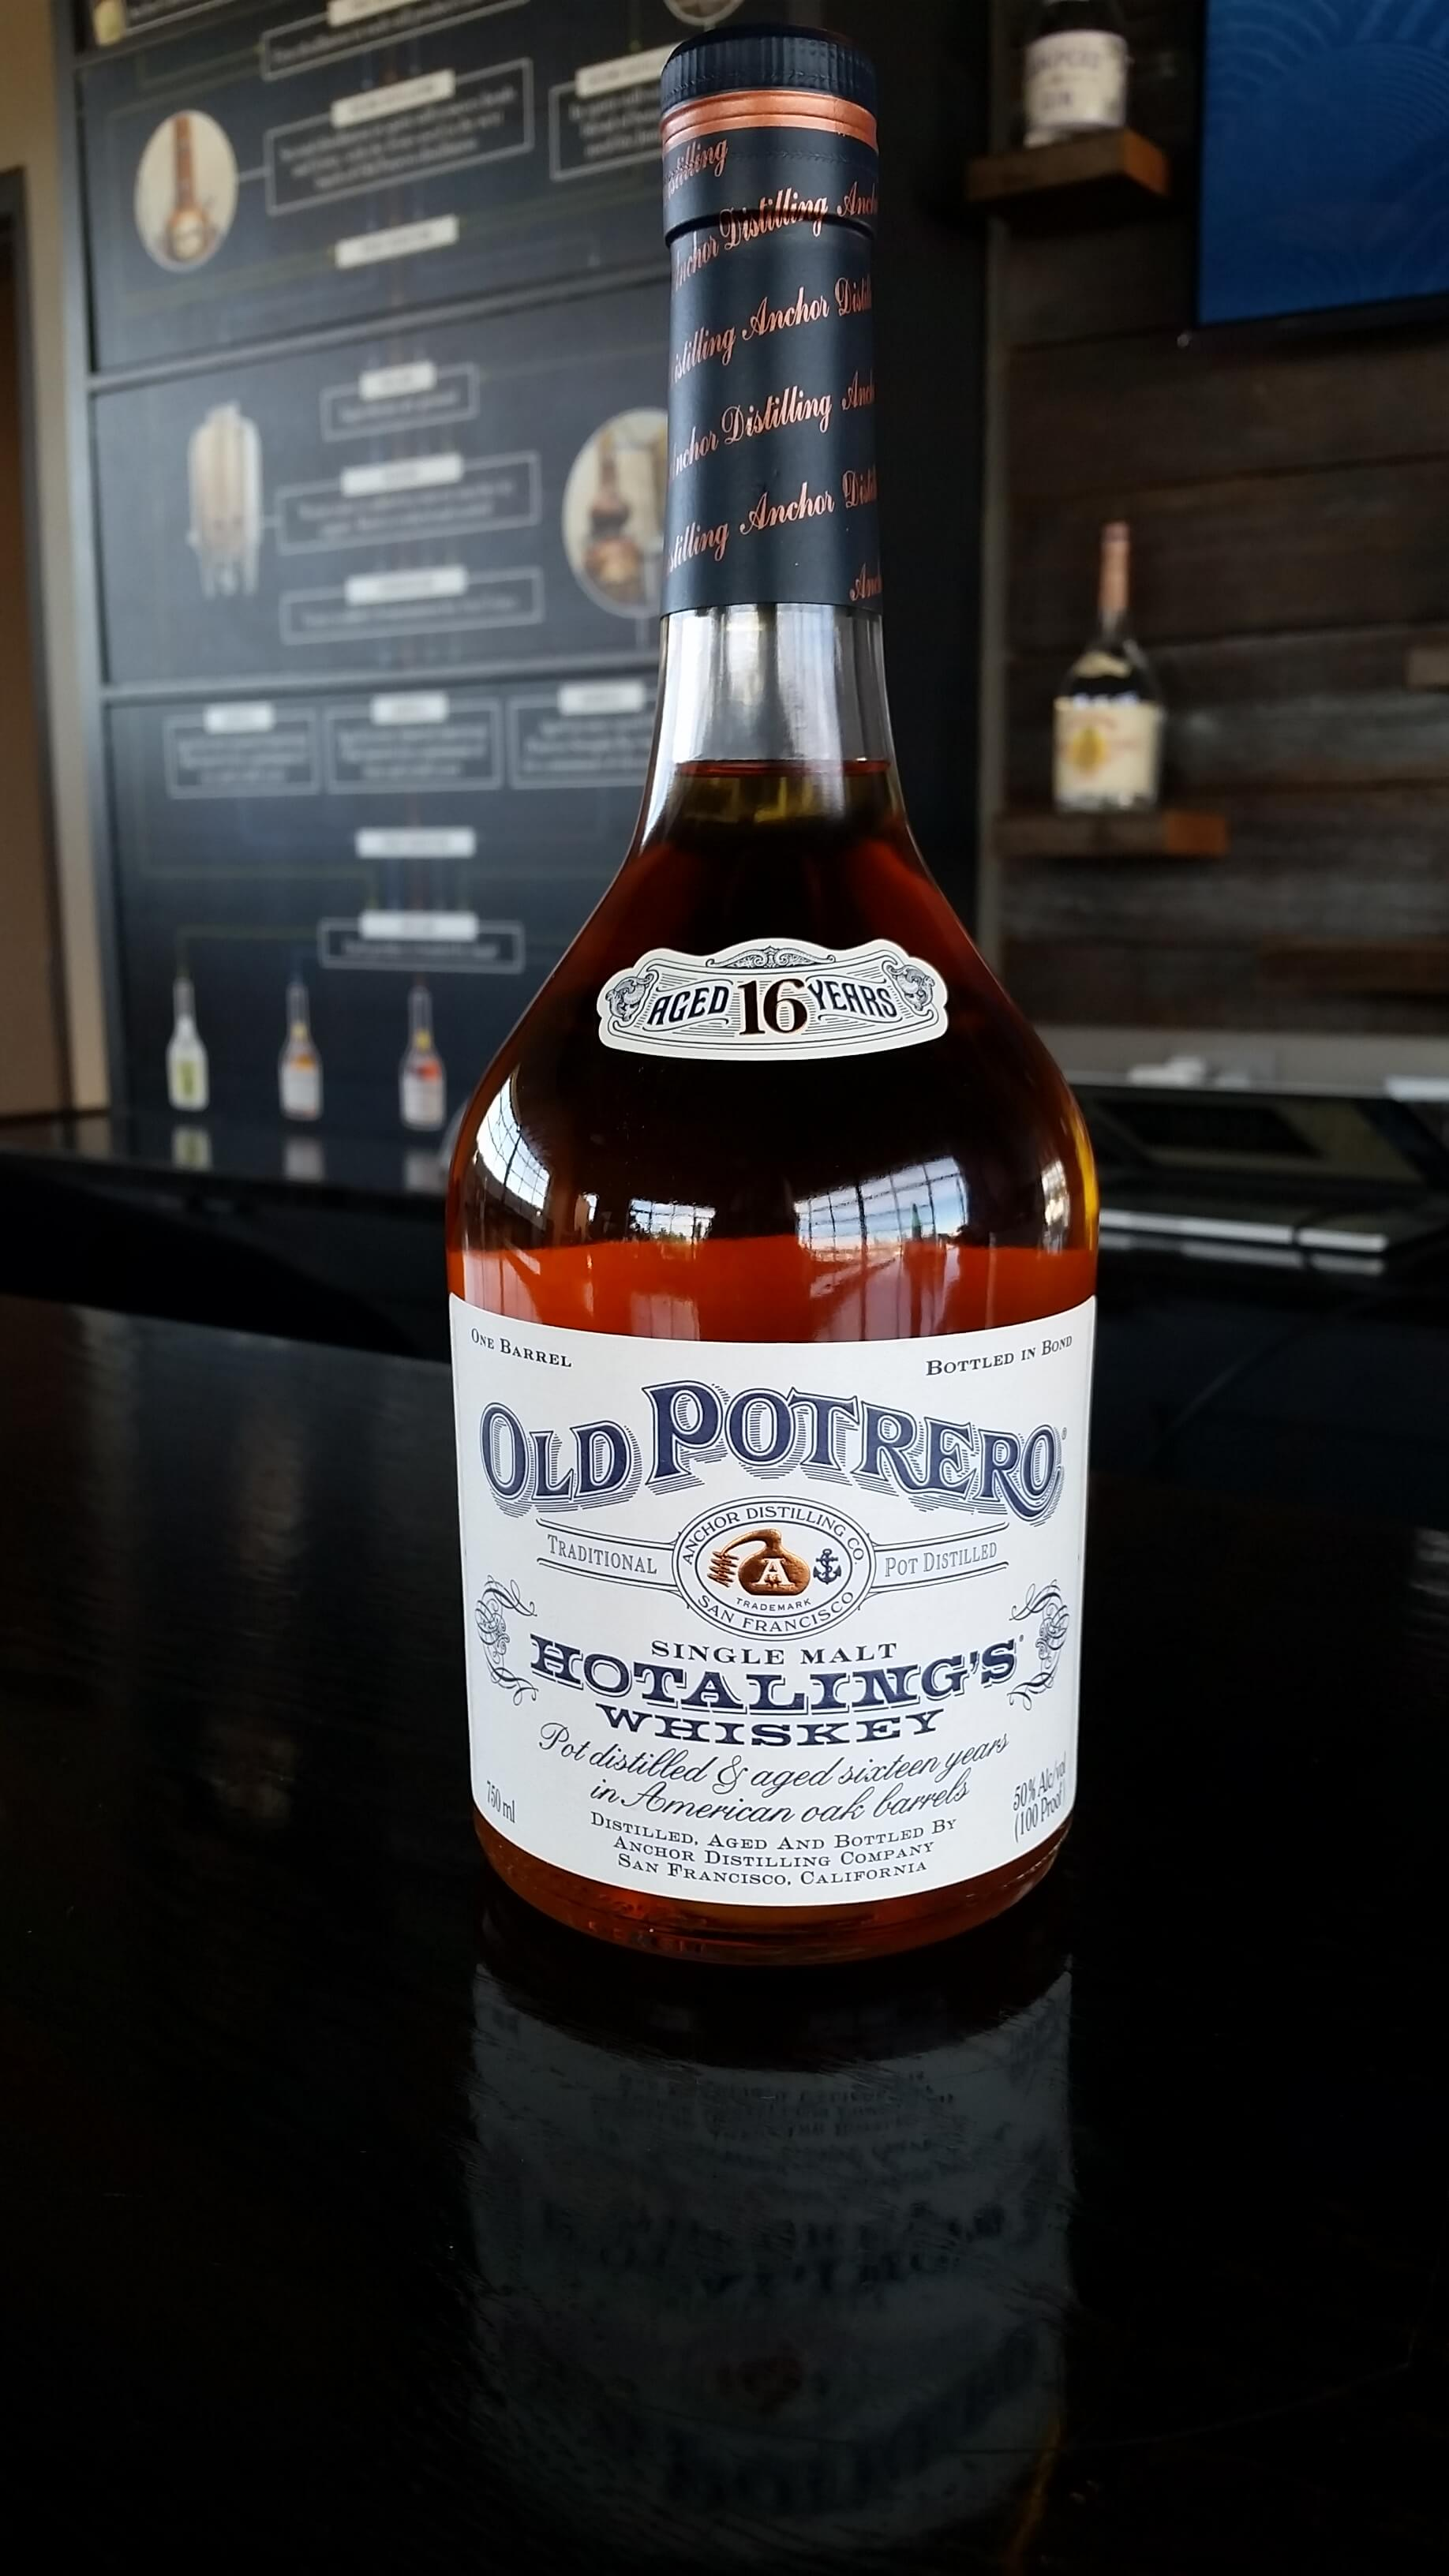 Old Potrero Single Malt Hotaling's Whiskey bottle - Anchor Distilling Company